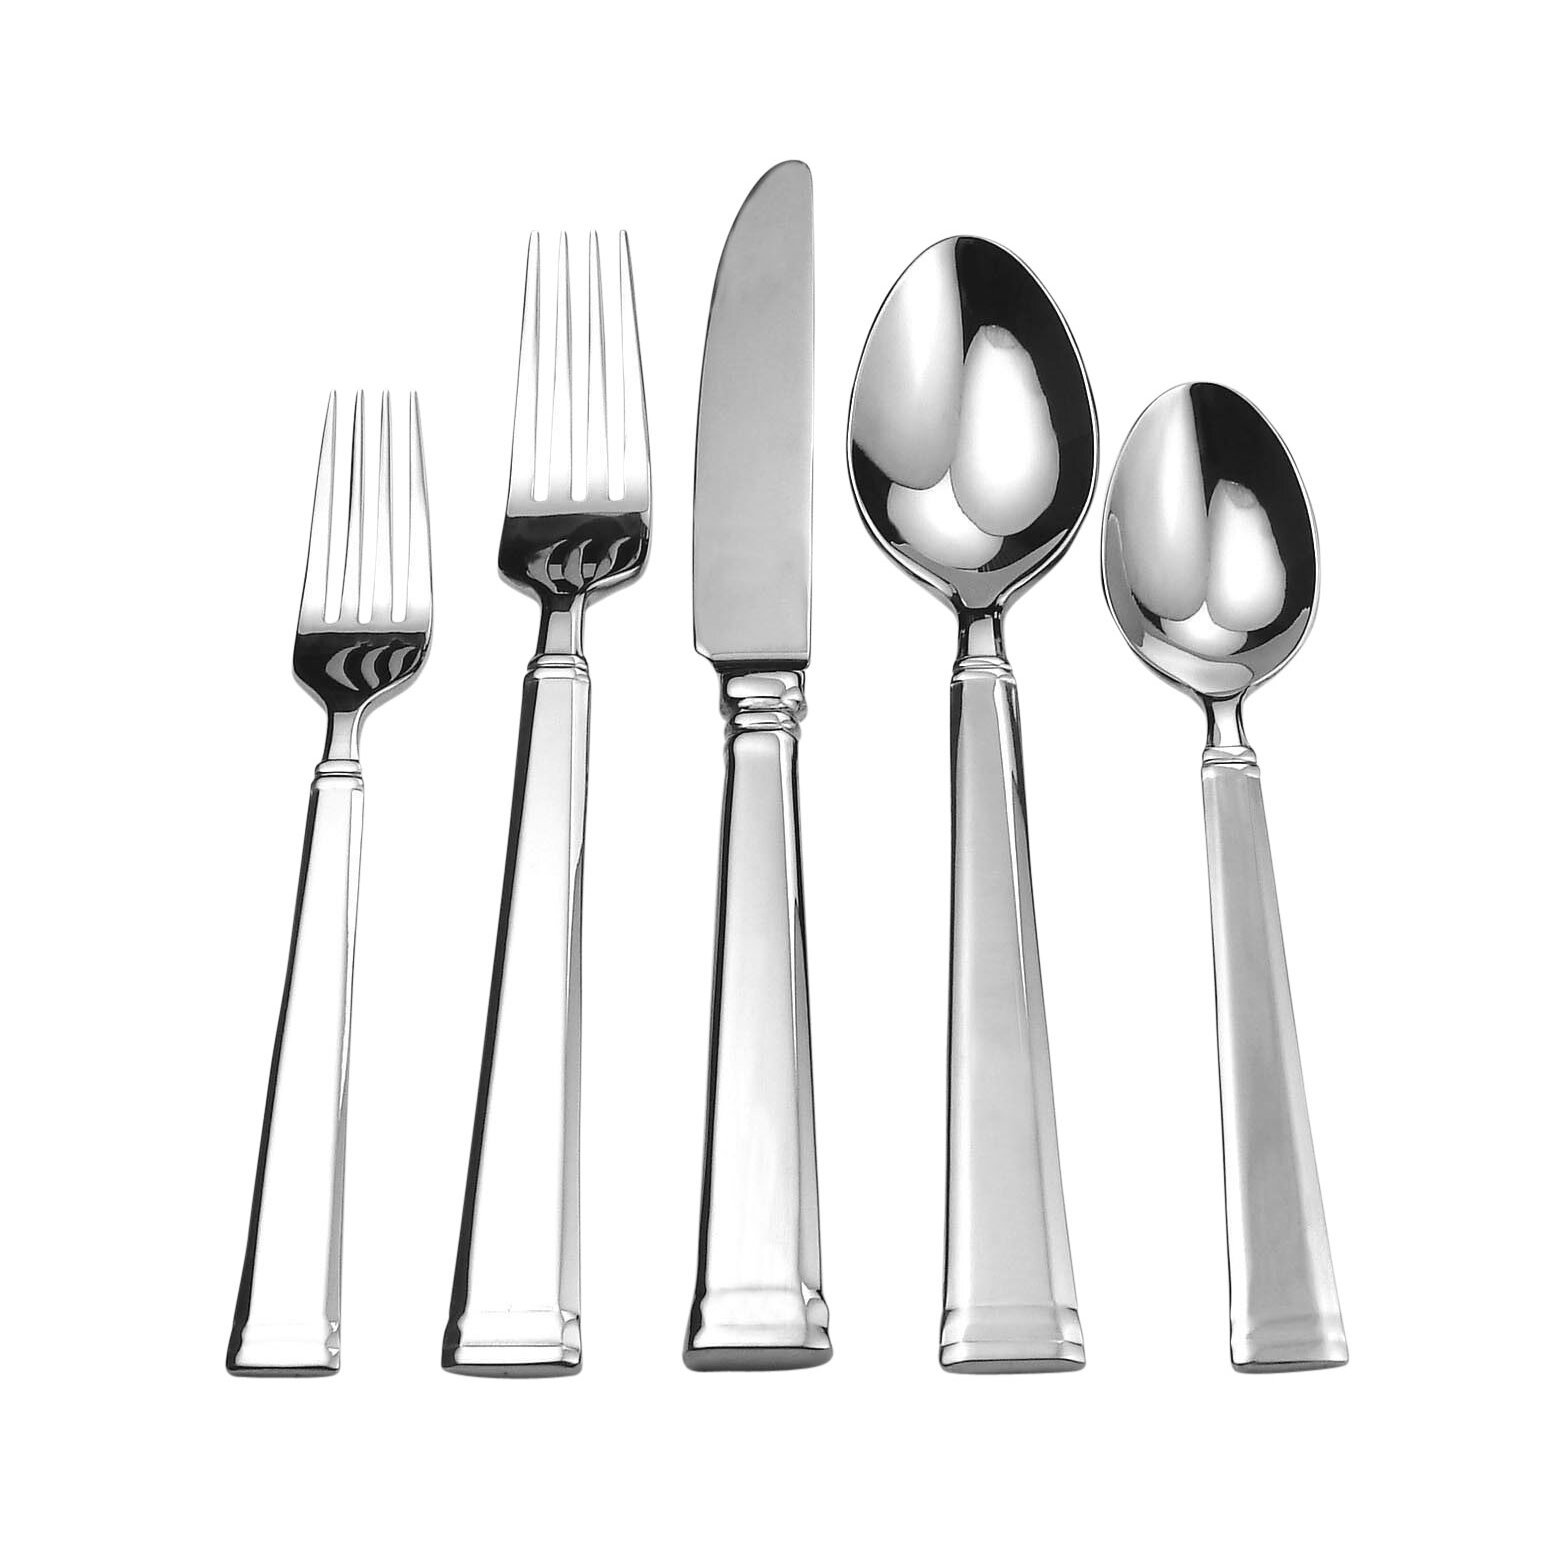 David Shaw Silverware Splendide Jena 20 Piece Flatware Set Wayfair